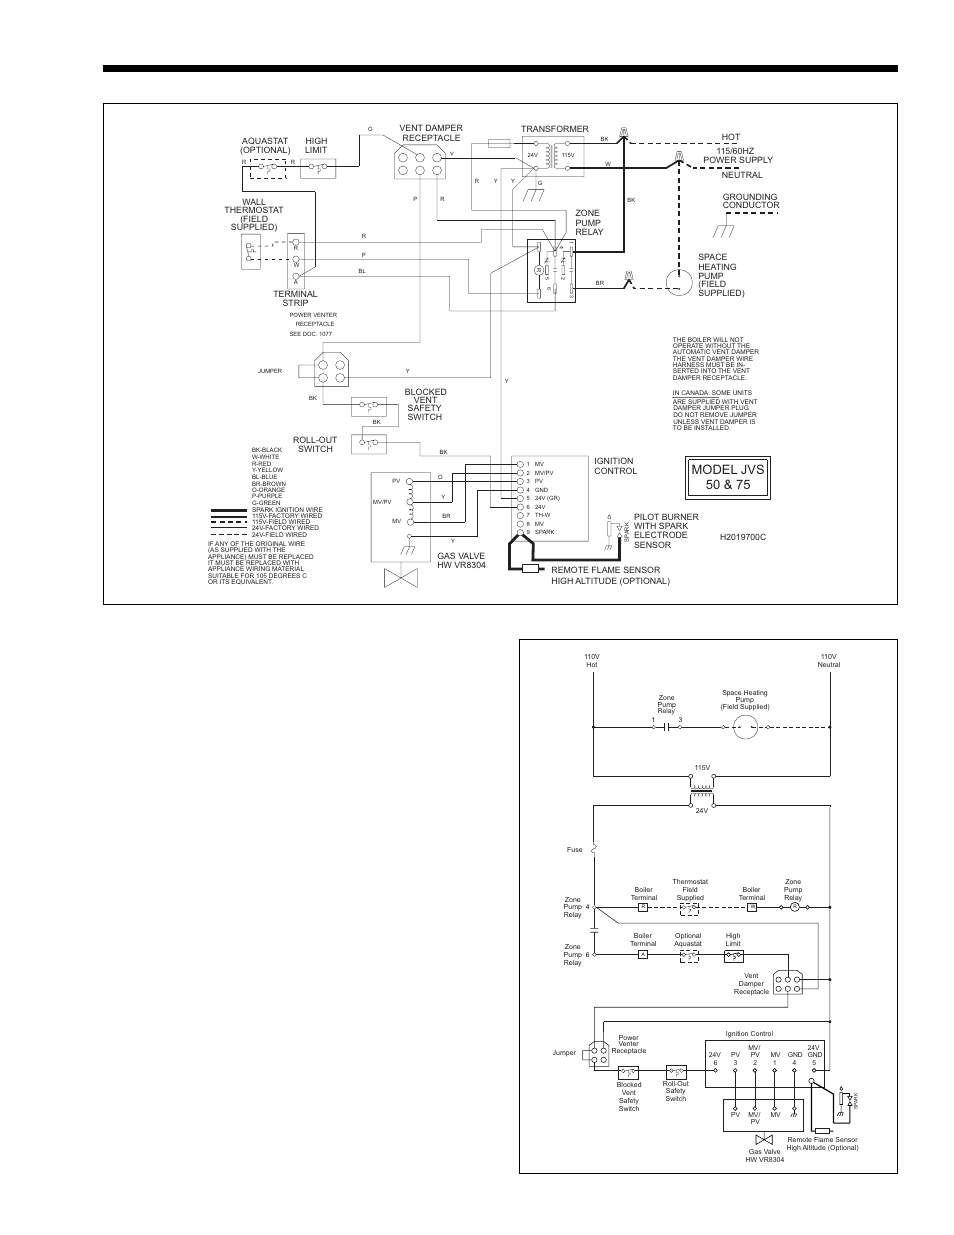 laars mini therm ii jvt sizes 50 225 install and operating manual page17?resize\\\\\=665%2C861 diagrams 2449985 lmtv wiring harness accessory hook up ( 79 lmtv wiring diagram at downloadfilm.co